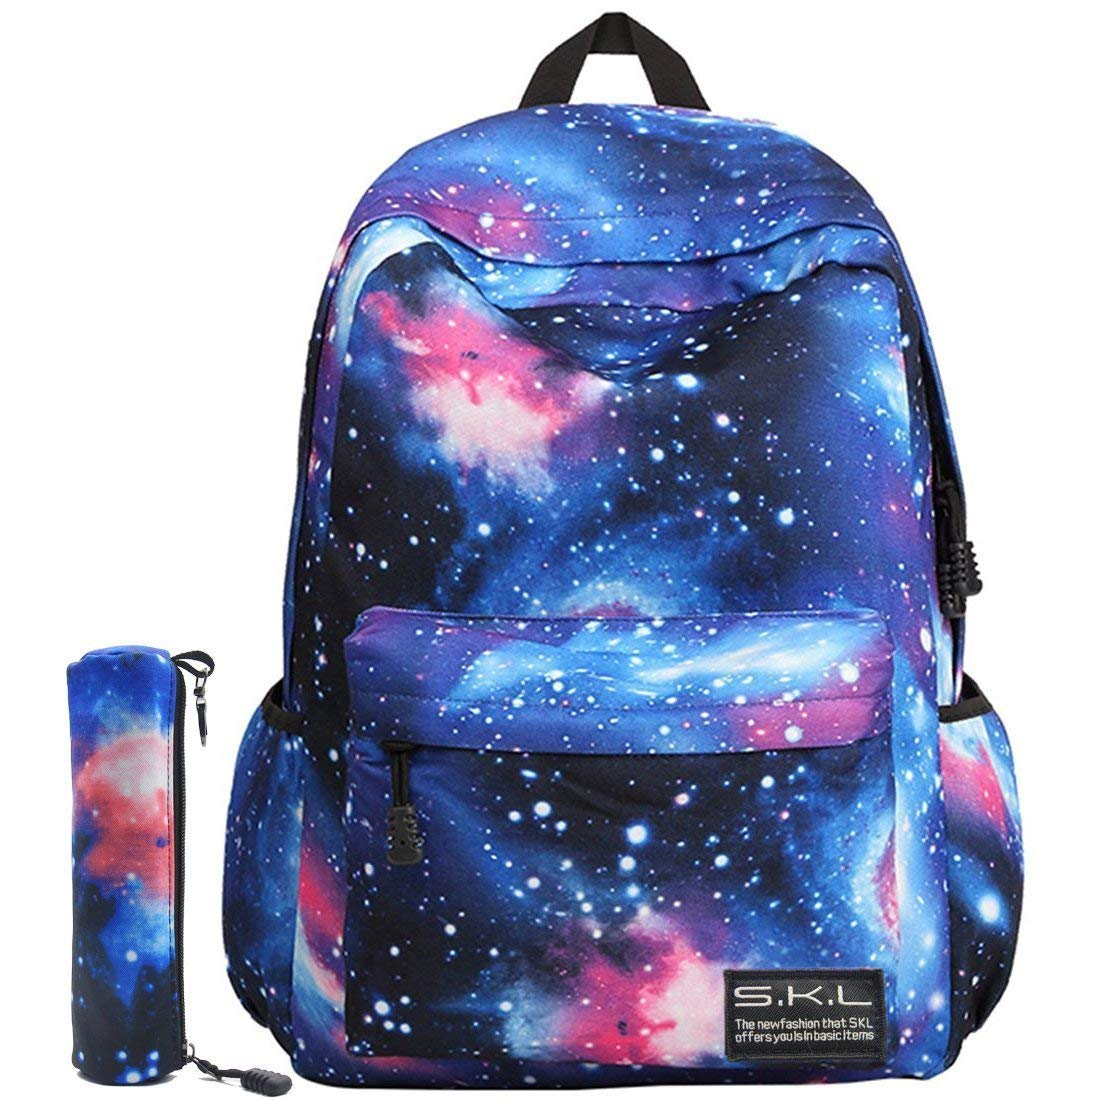 41b2bb49130 Cheap Galaxy Backpack Diy, find Galaxy Backpack Diy deals on line at ...